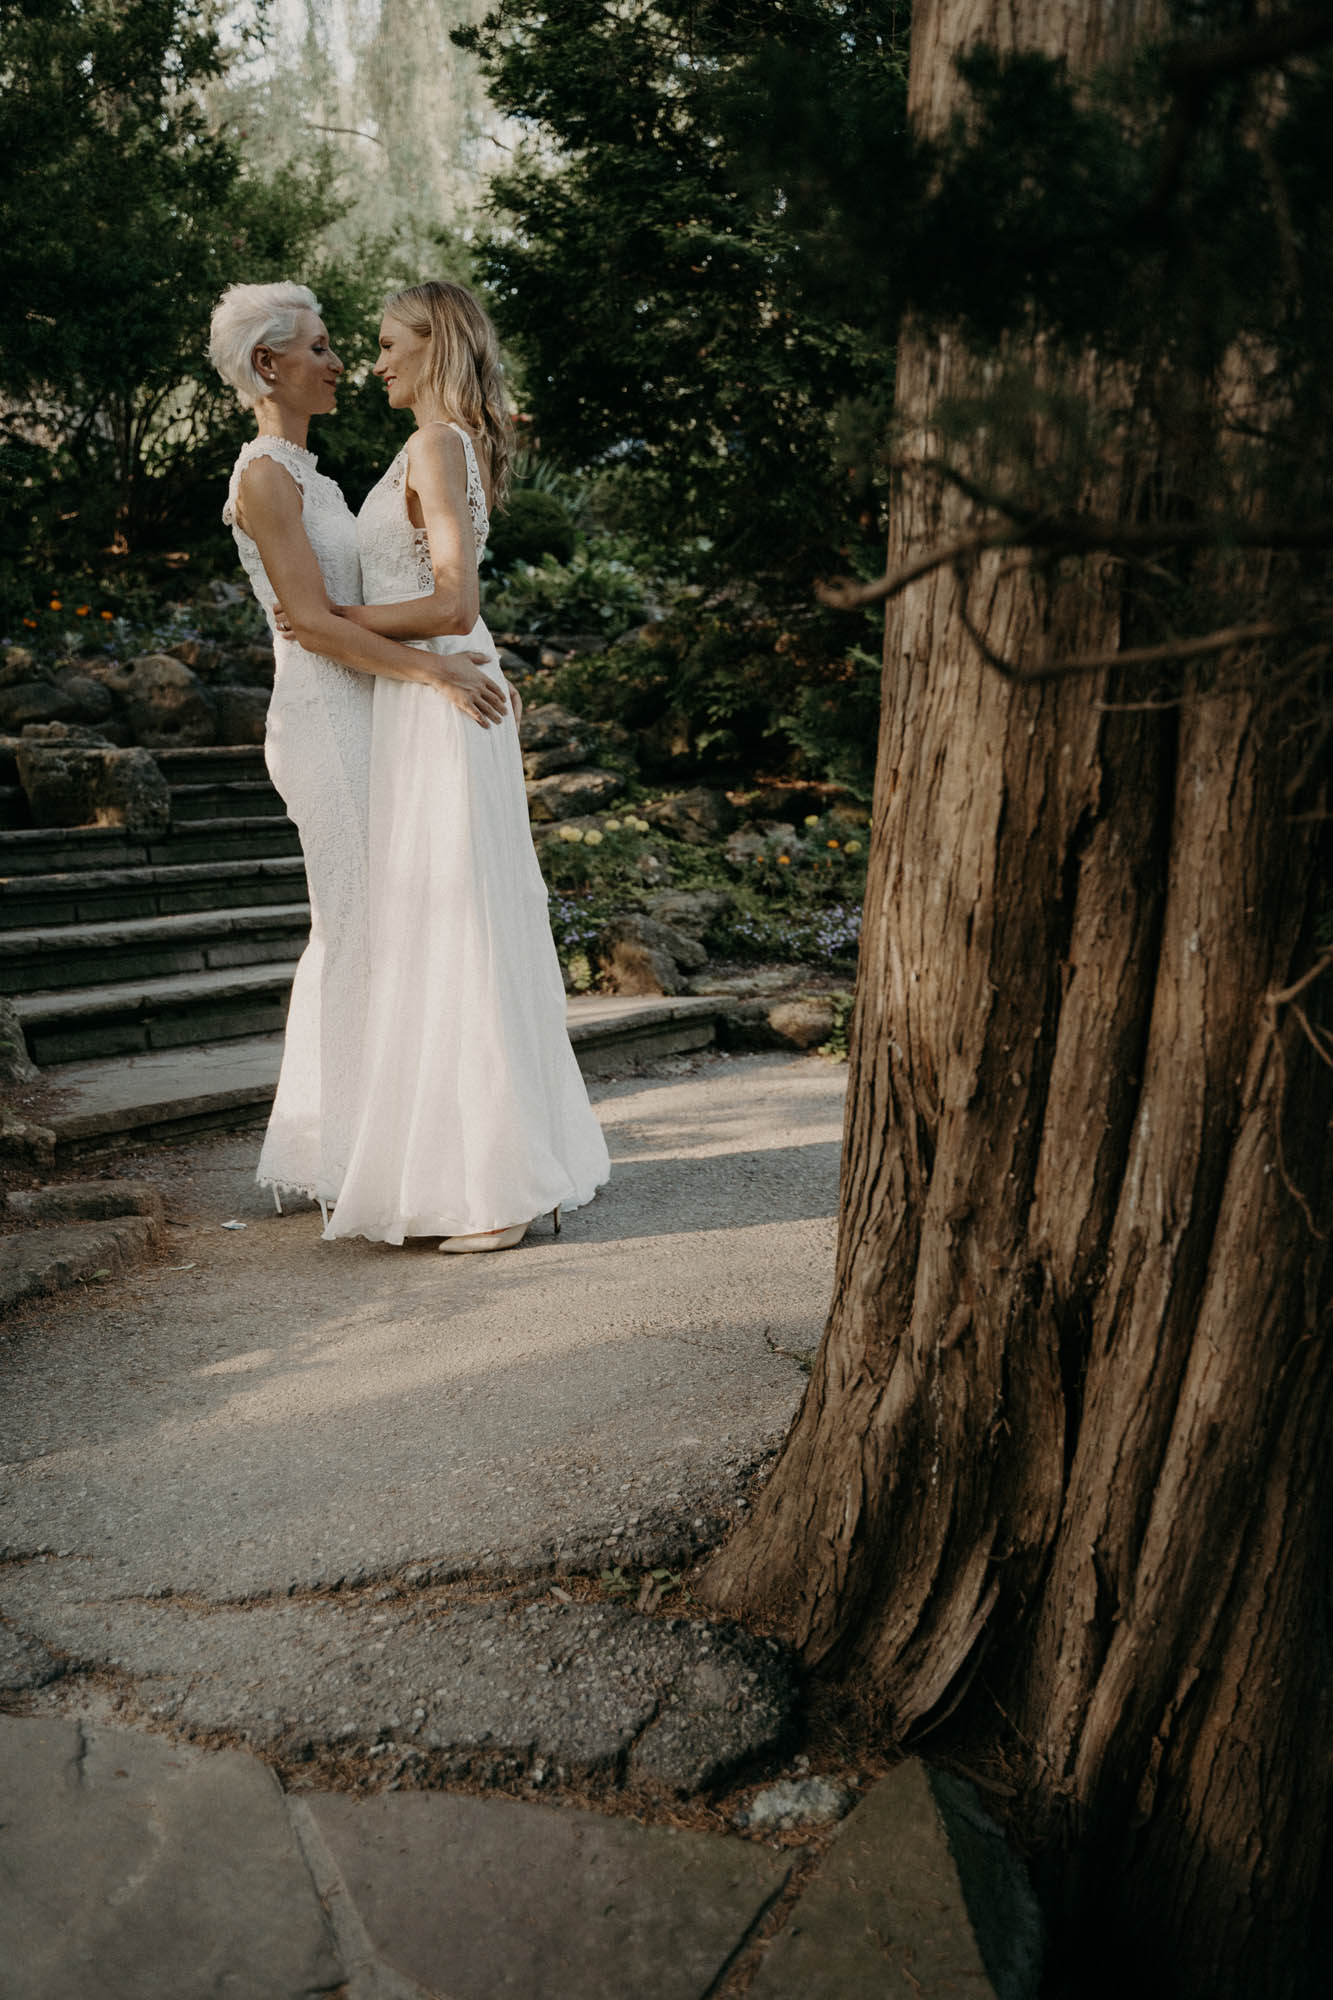 Toronto Wedding Photography - COVID Wedding - Two Brides - Dancing With Her (1)